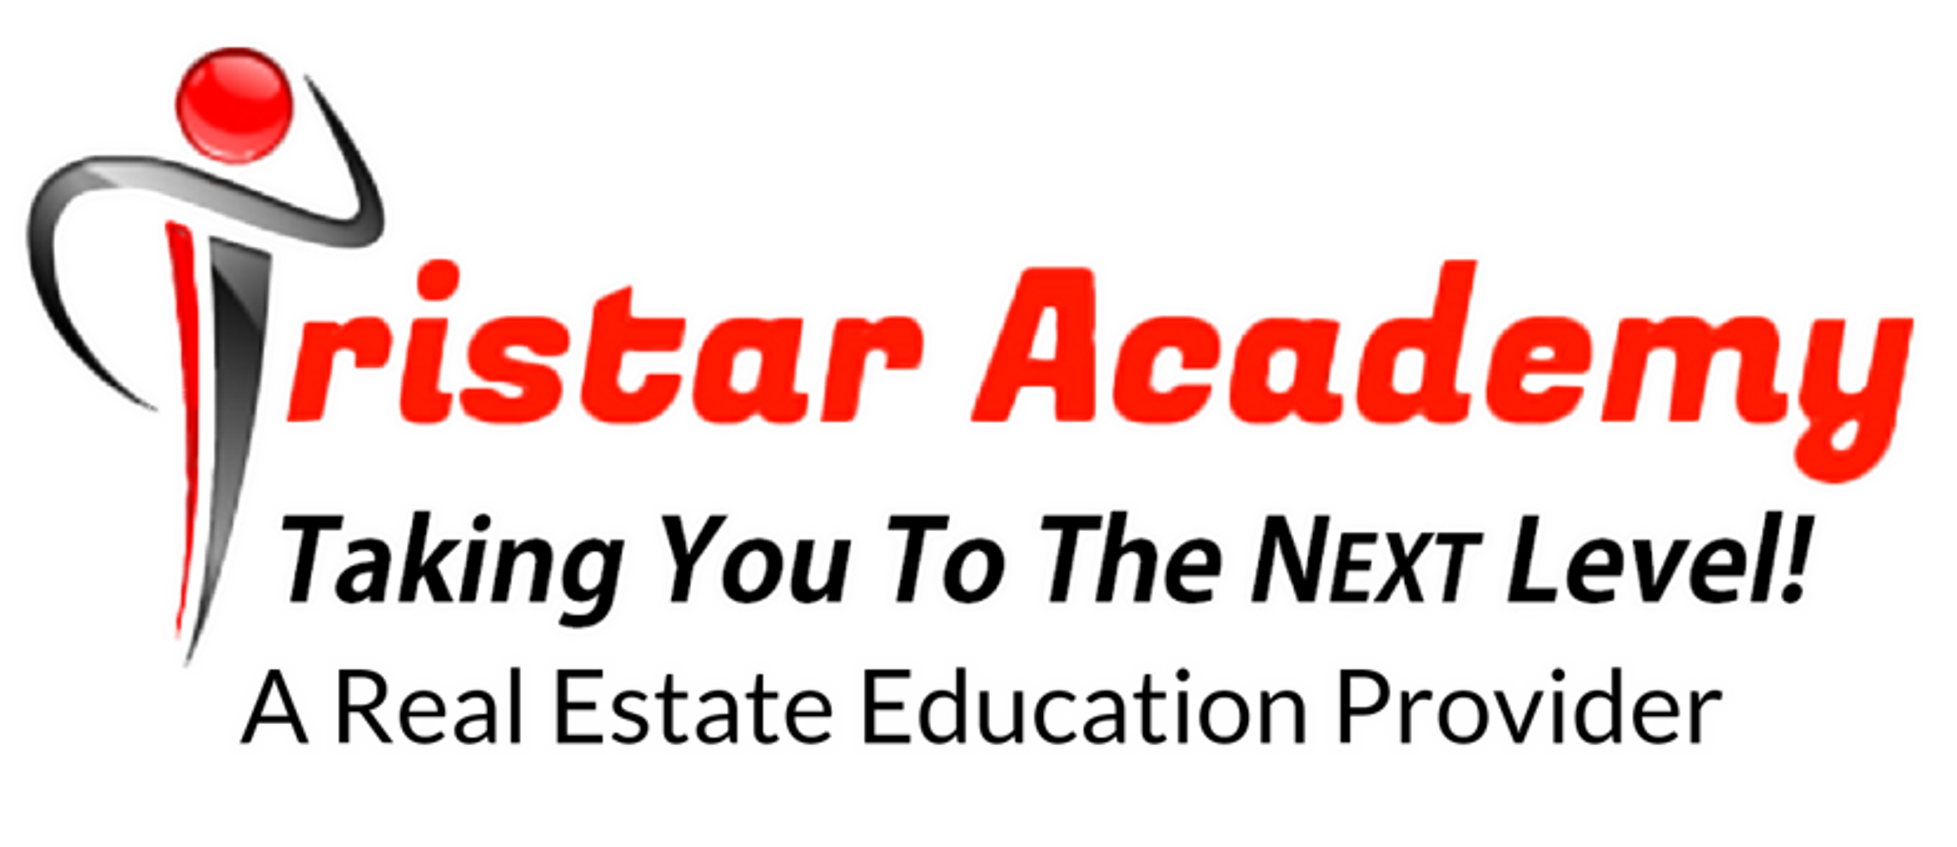 Maryland Real Estate Continuing Education | Real Estate Classes Online MD